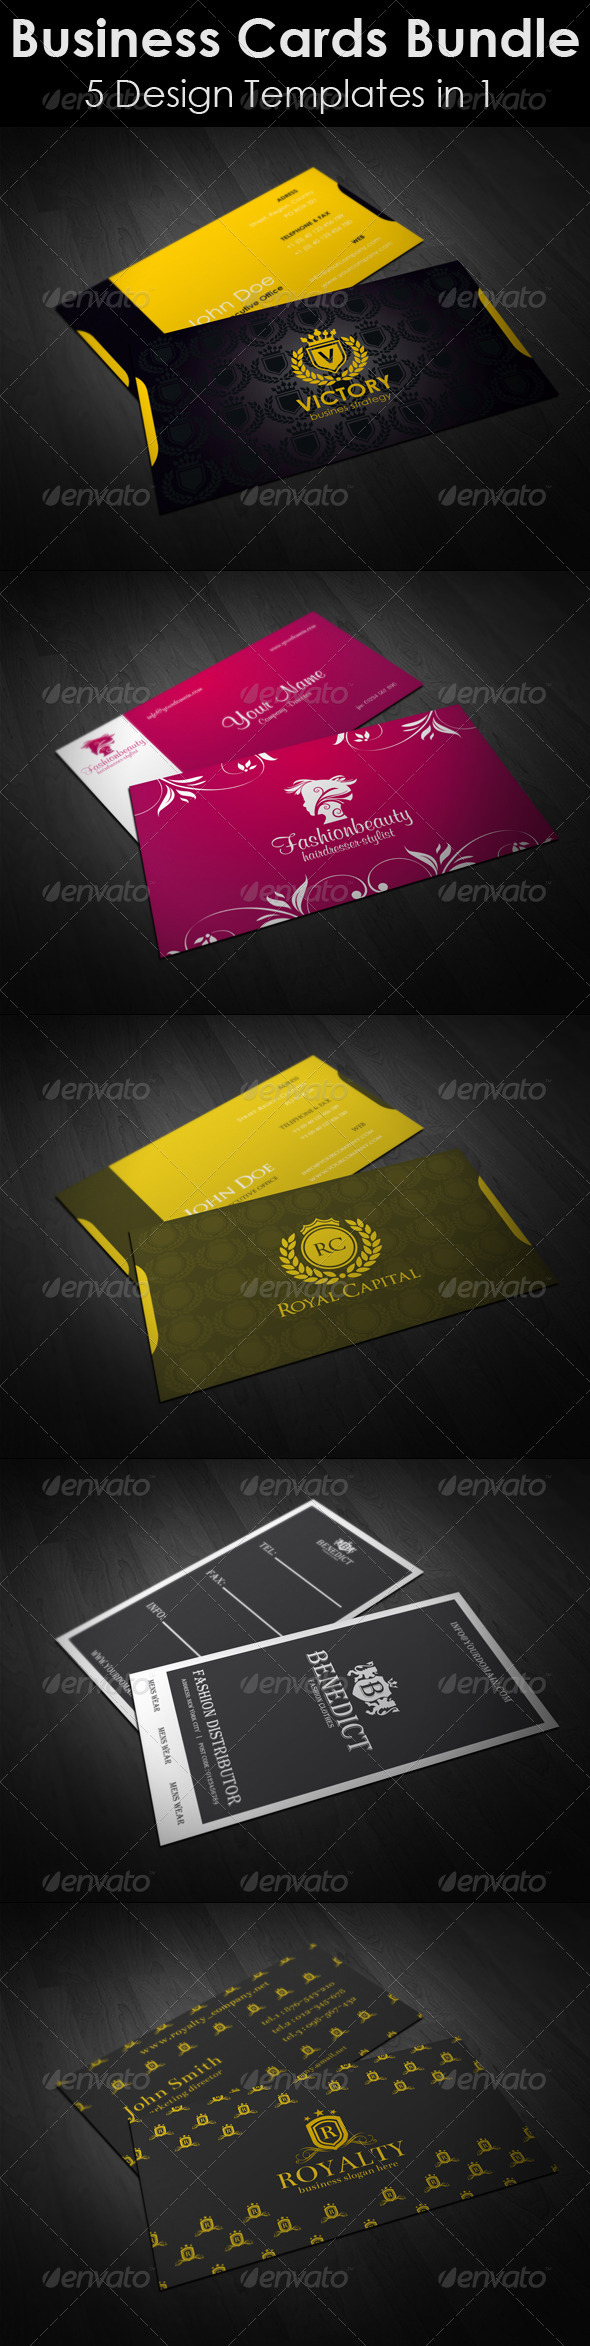 Business-Cards-Bundle. 5 in 1 - Business Cards Print Templates